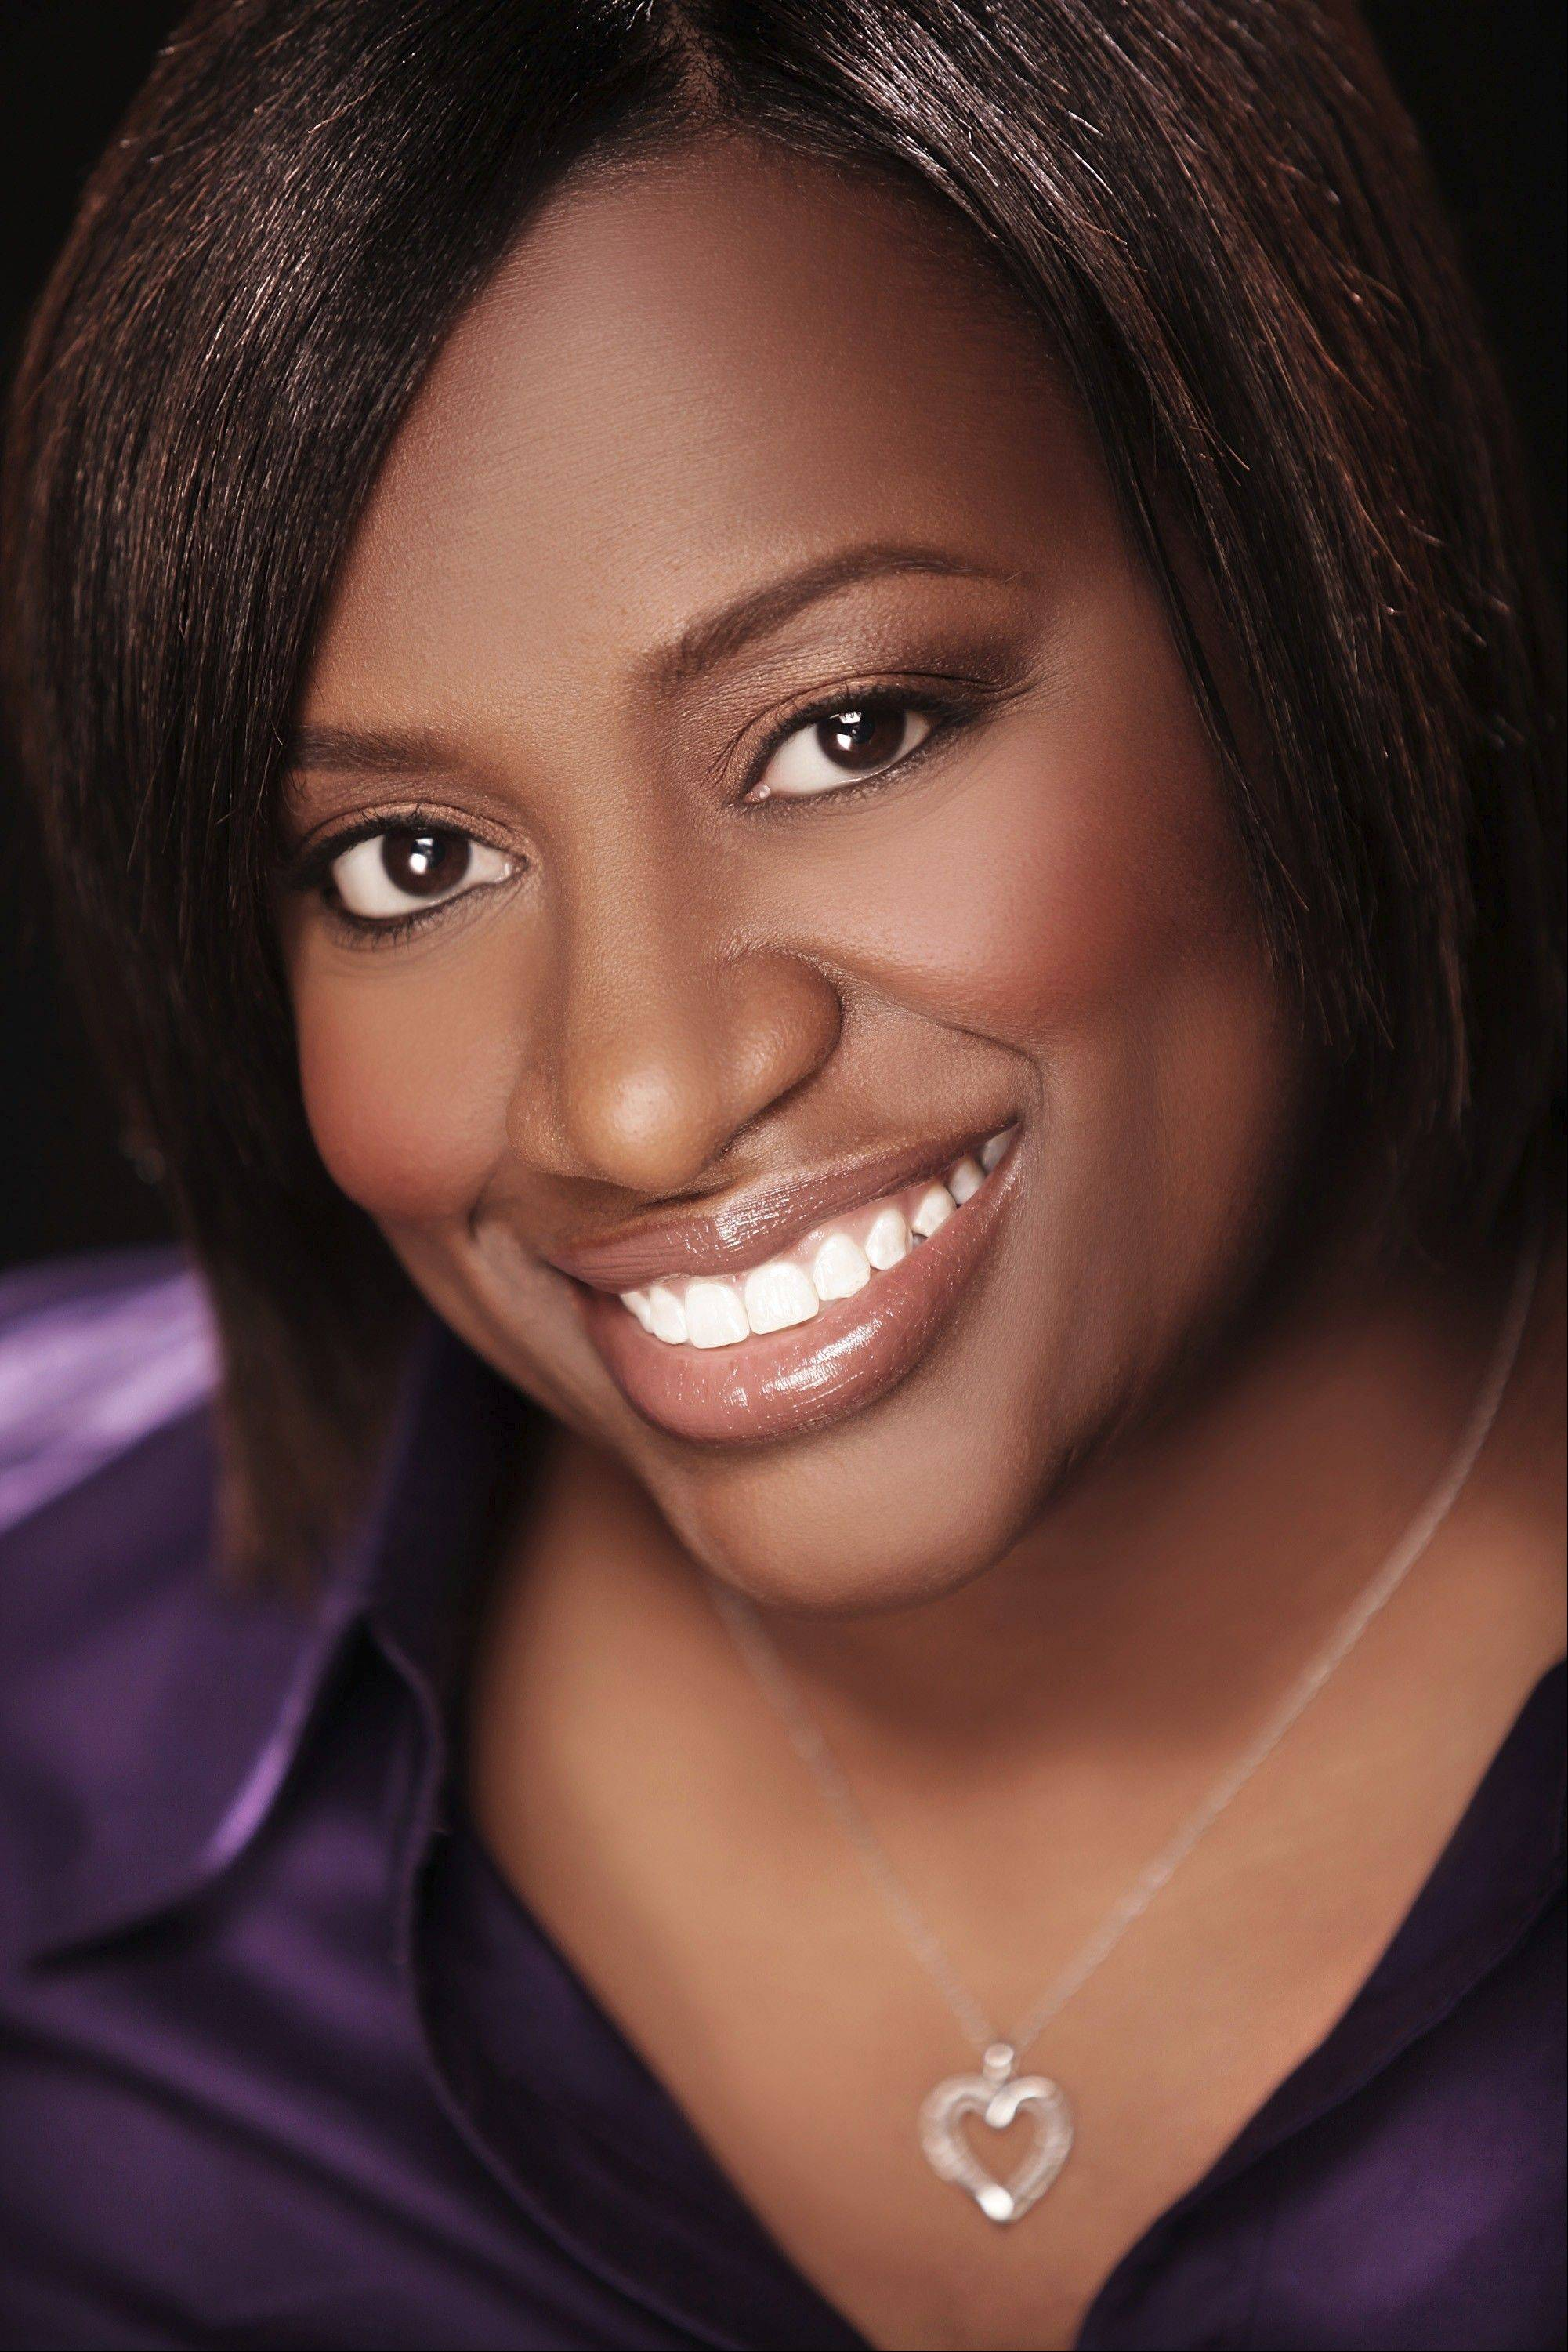 Comedian Erin Jackson appears at Zanies at Pheasant Run Resort in St. Charles.